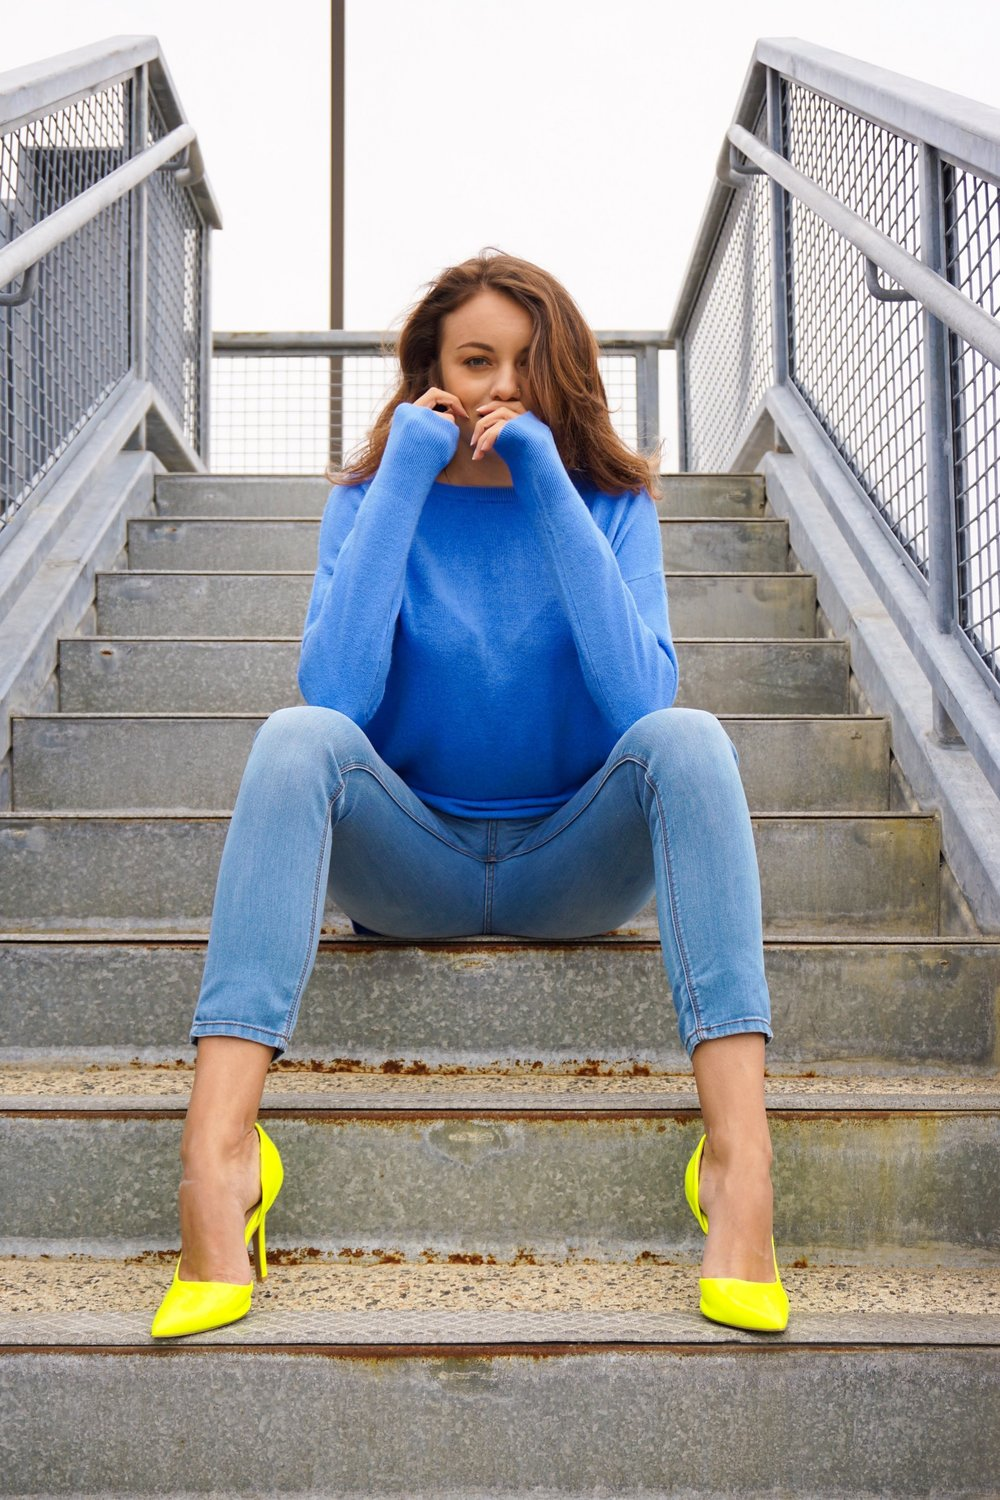 A girl sitting on the stairs, wearing a blue sweater, blue jeans, and neon heels.